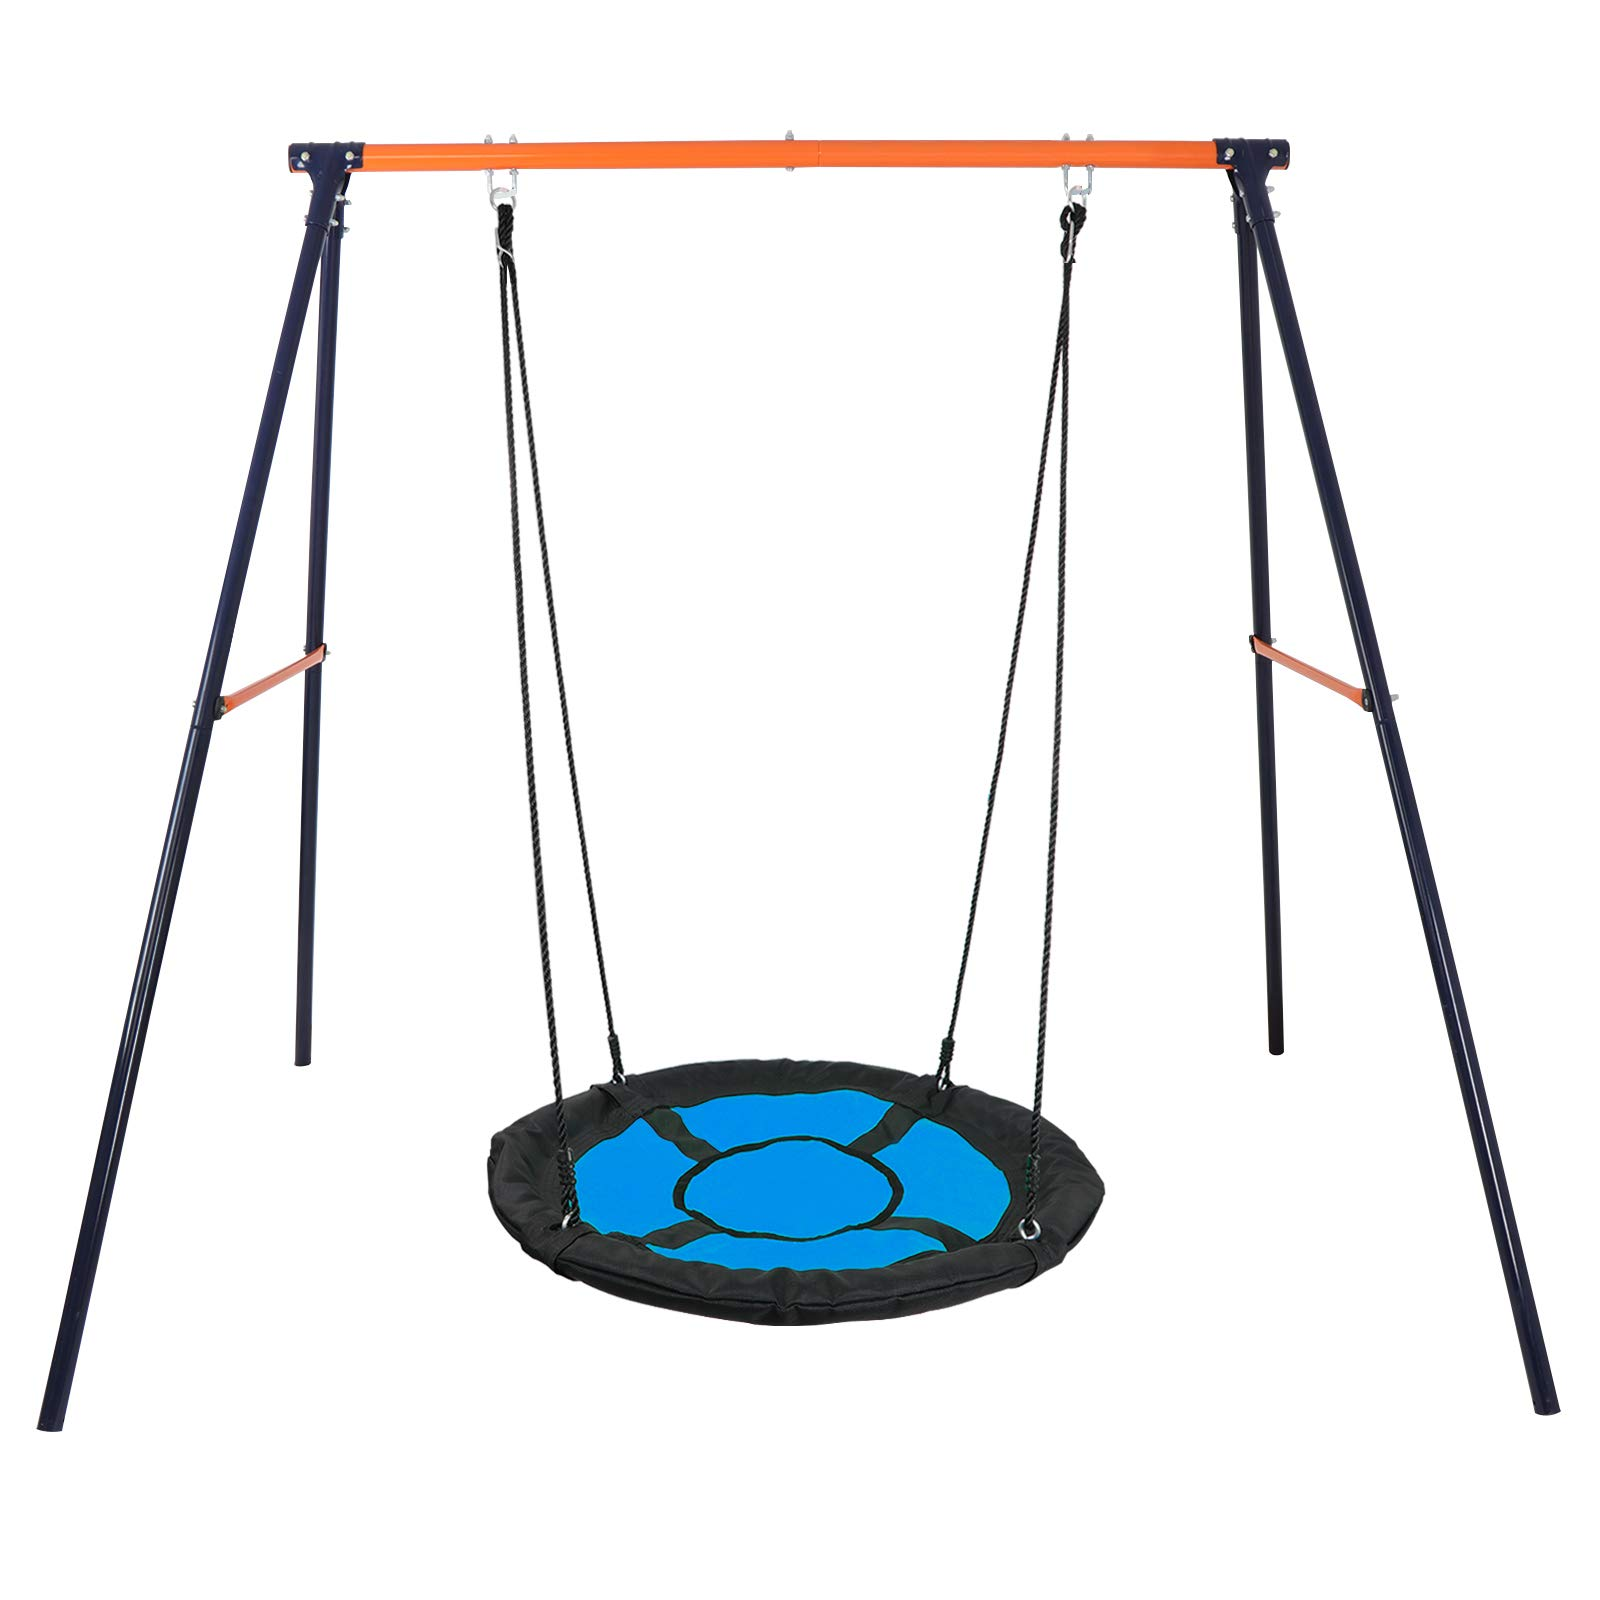 SUPER DEAL Swing Set, Swing + Stand Combo (Blue, XXL)